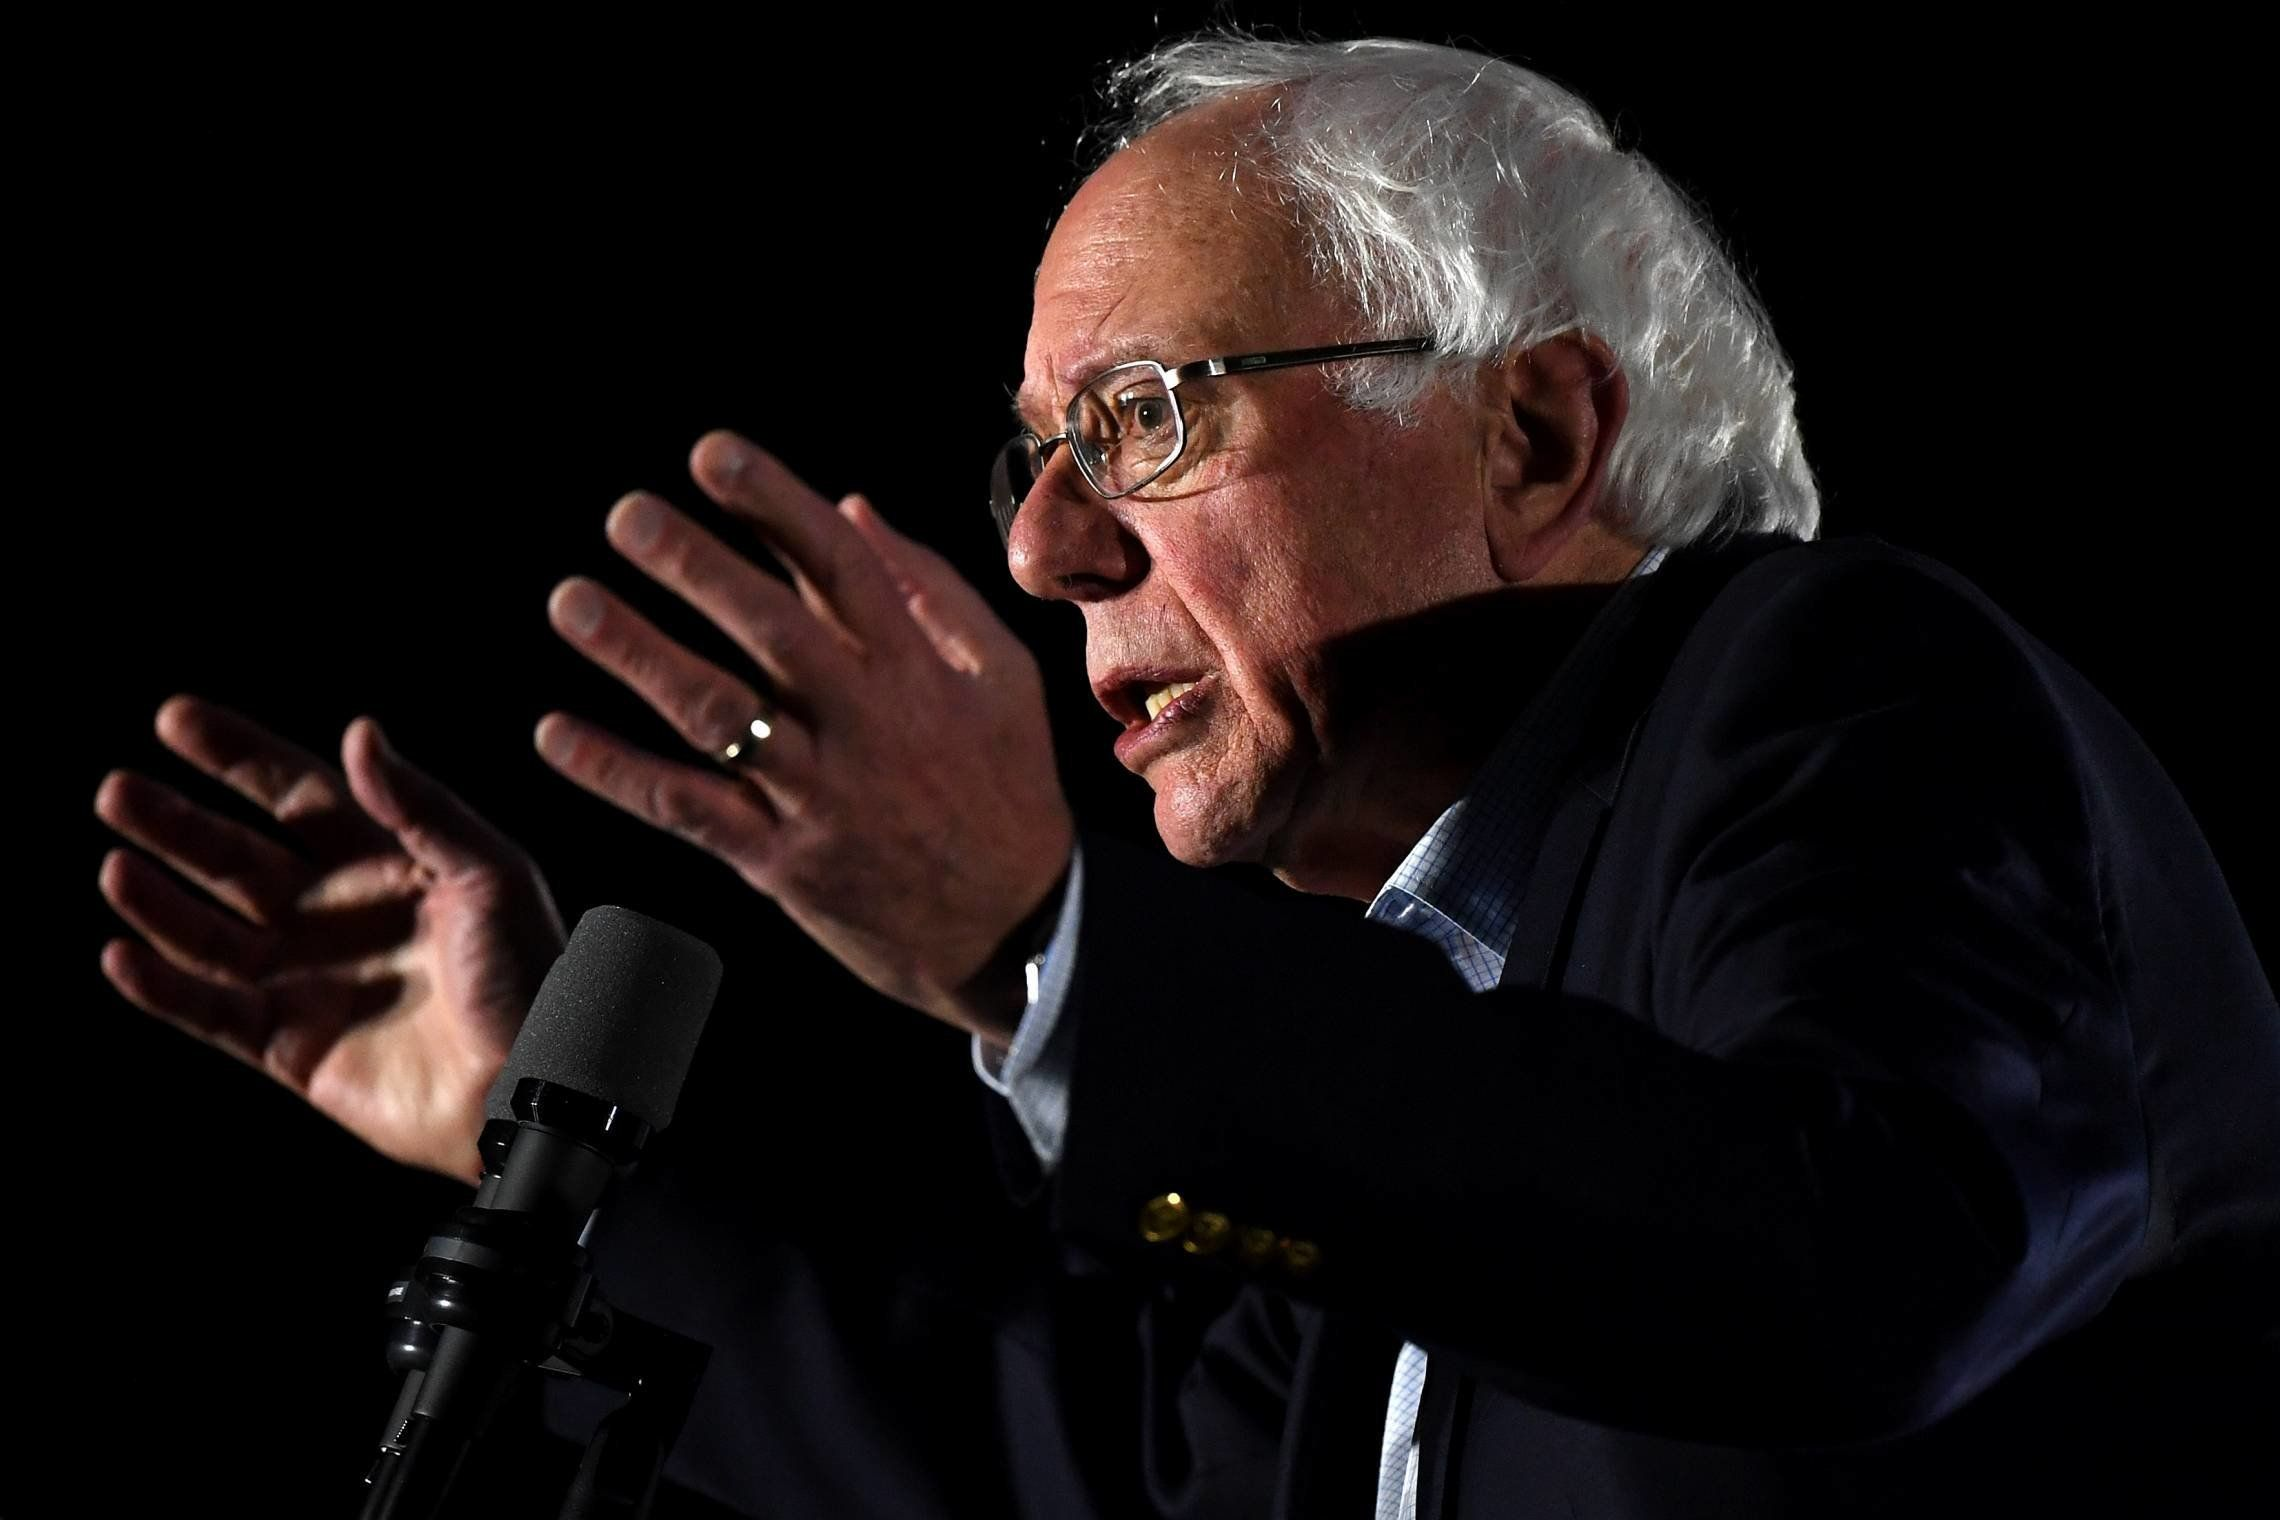 Bernie Sanders' Possible 2020 Presidential Bid Will Feature a 'Bigger Campaign'